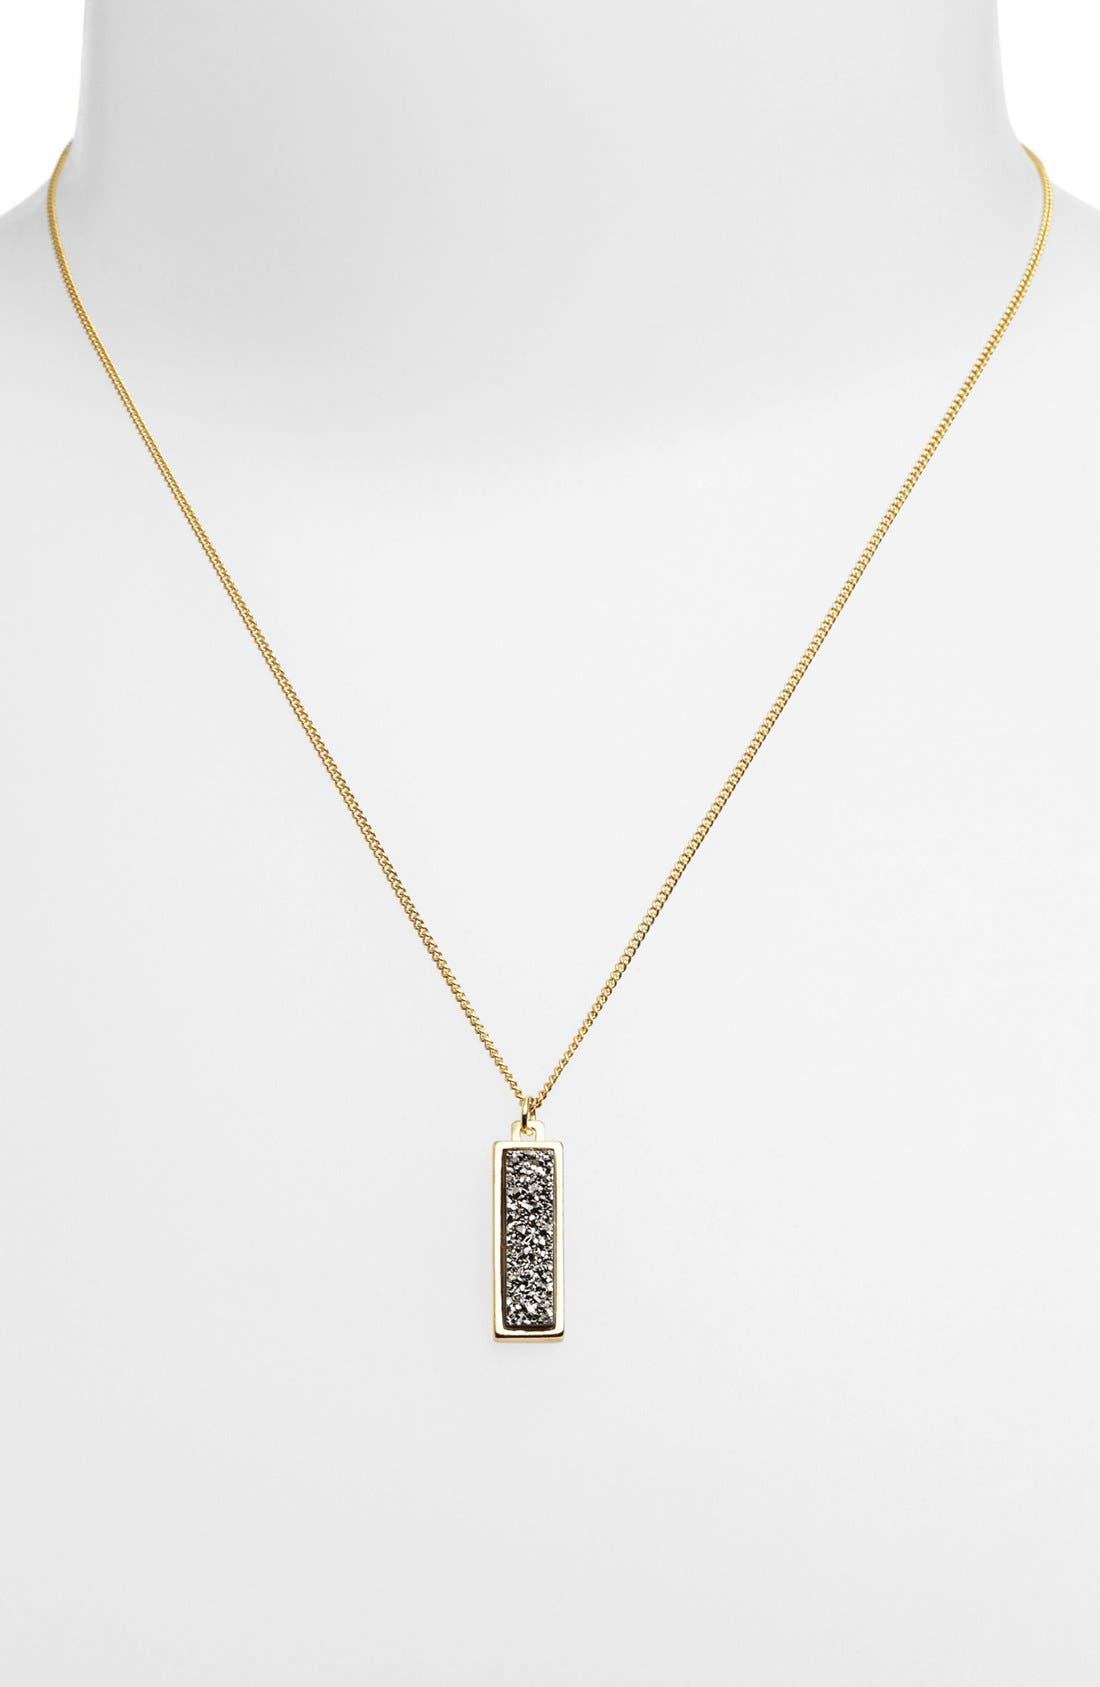 Alternate Image 1 Selected - Marcia Moran Drusy Pendant Necklace (Online Only)